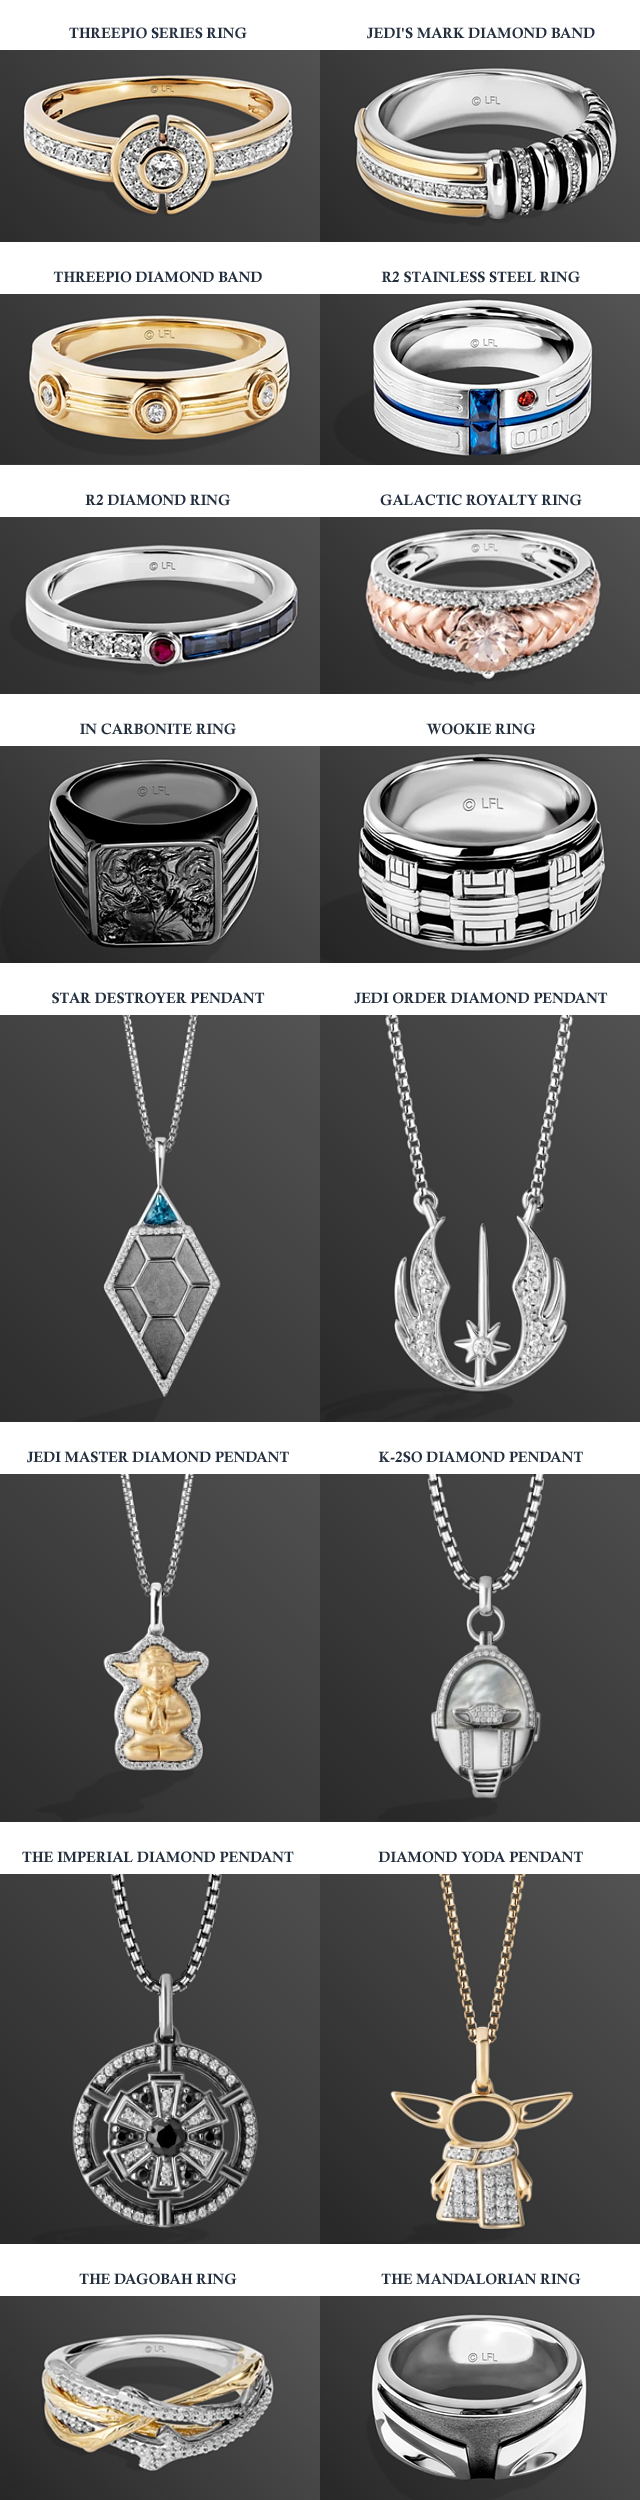 THE COOLEST STAR WARS JEWELRY THIS SIDE OF THE GALAXY